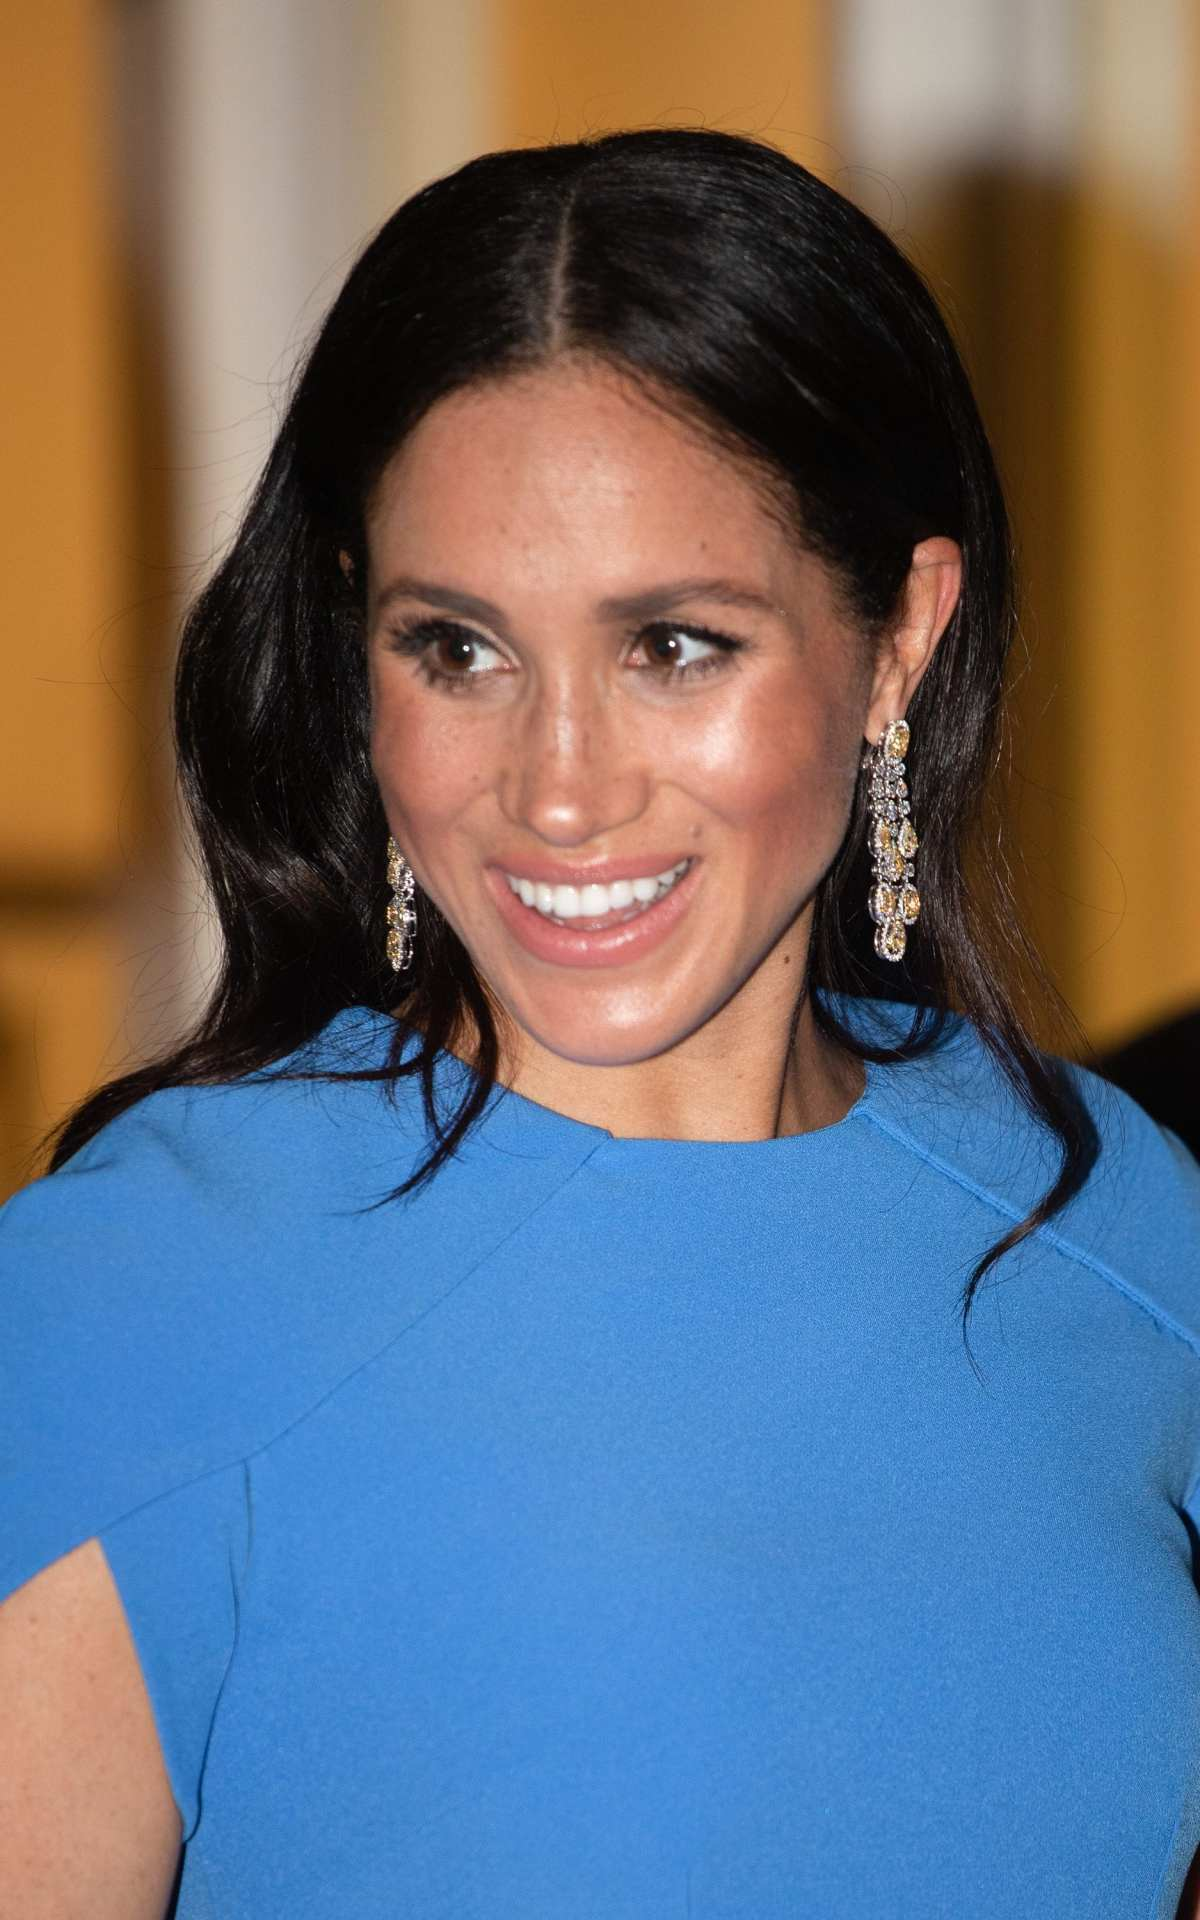 Meghan wearing the diamond chandelier earrings that have caused controversy, at a state dinner in Fiji in 2018